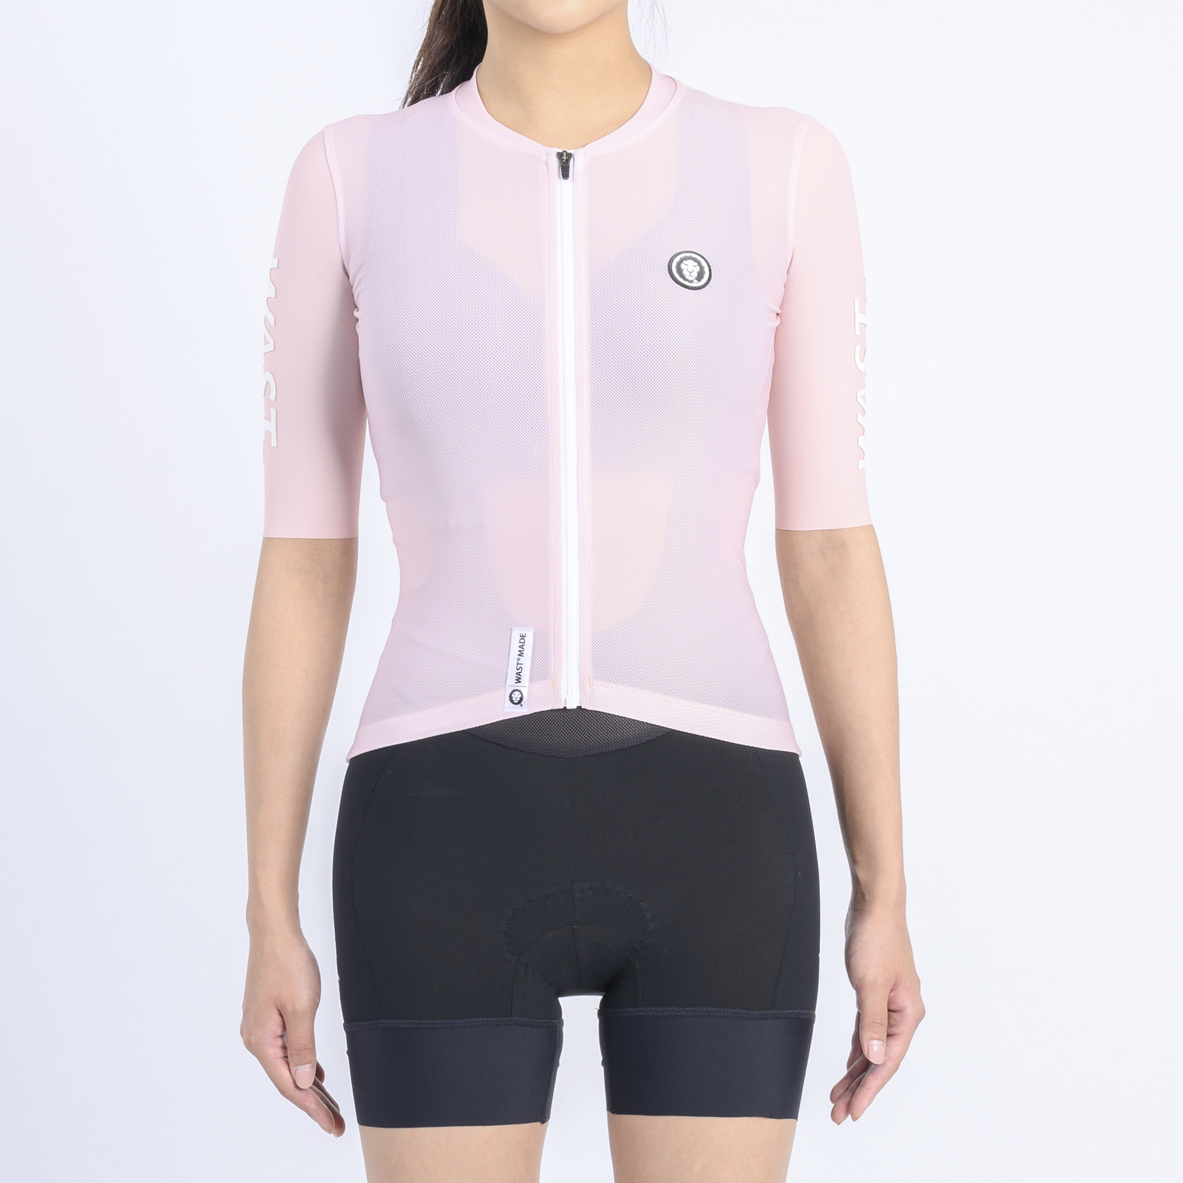 /archive/product/item/images/27a-w9-wbbproaeroshortjersey-peach-w-f.png